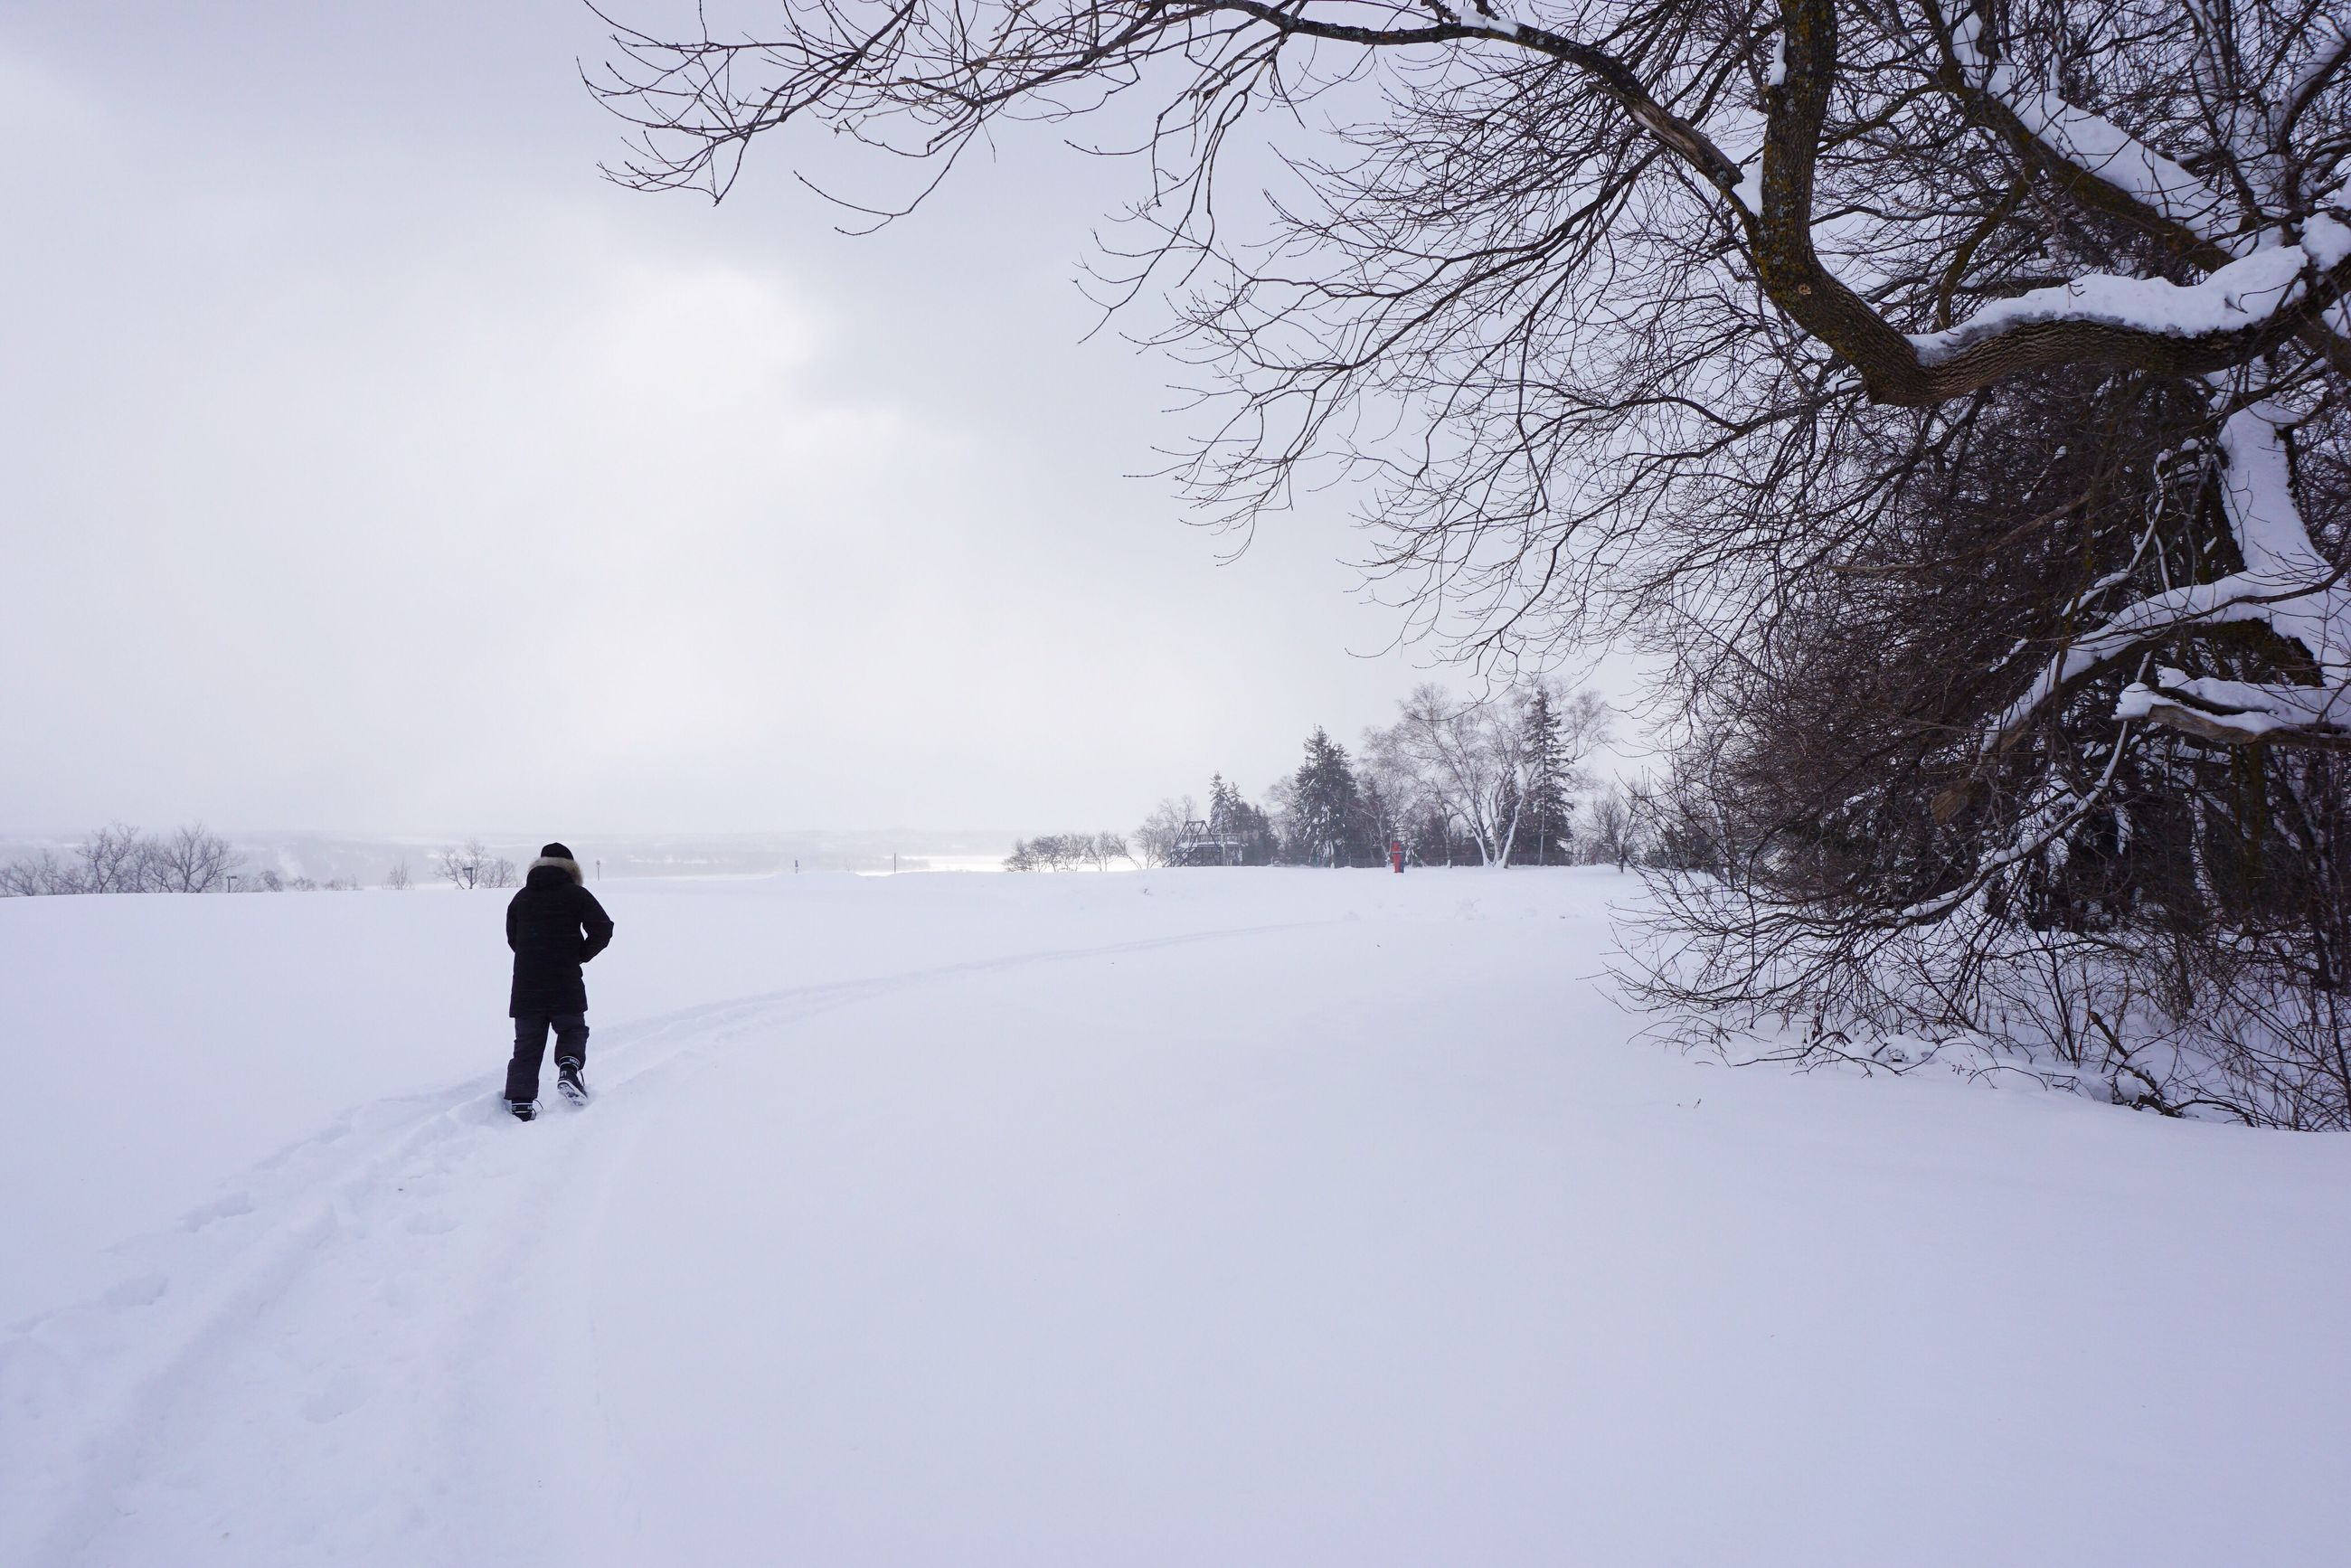 winter, snow, cold temperature, weather, one person, real people, day, sky, nature, leisure activity, outdoors, rear view, beauty in nature, landscape, full length, adventure, tree, scenics